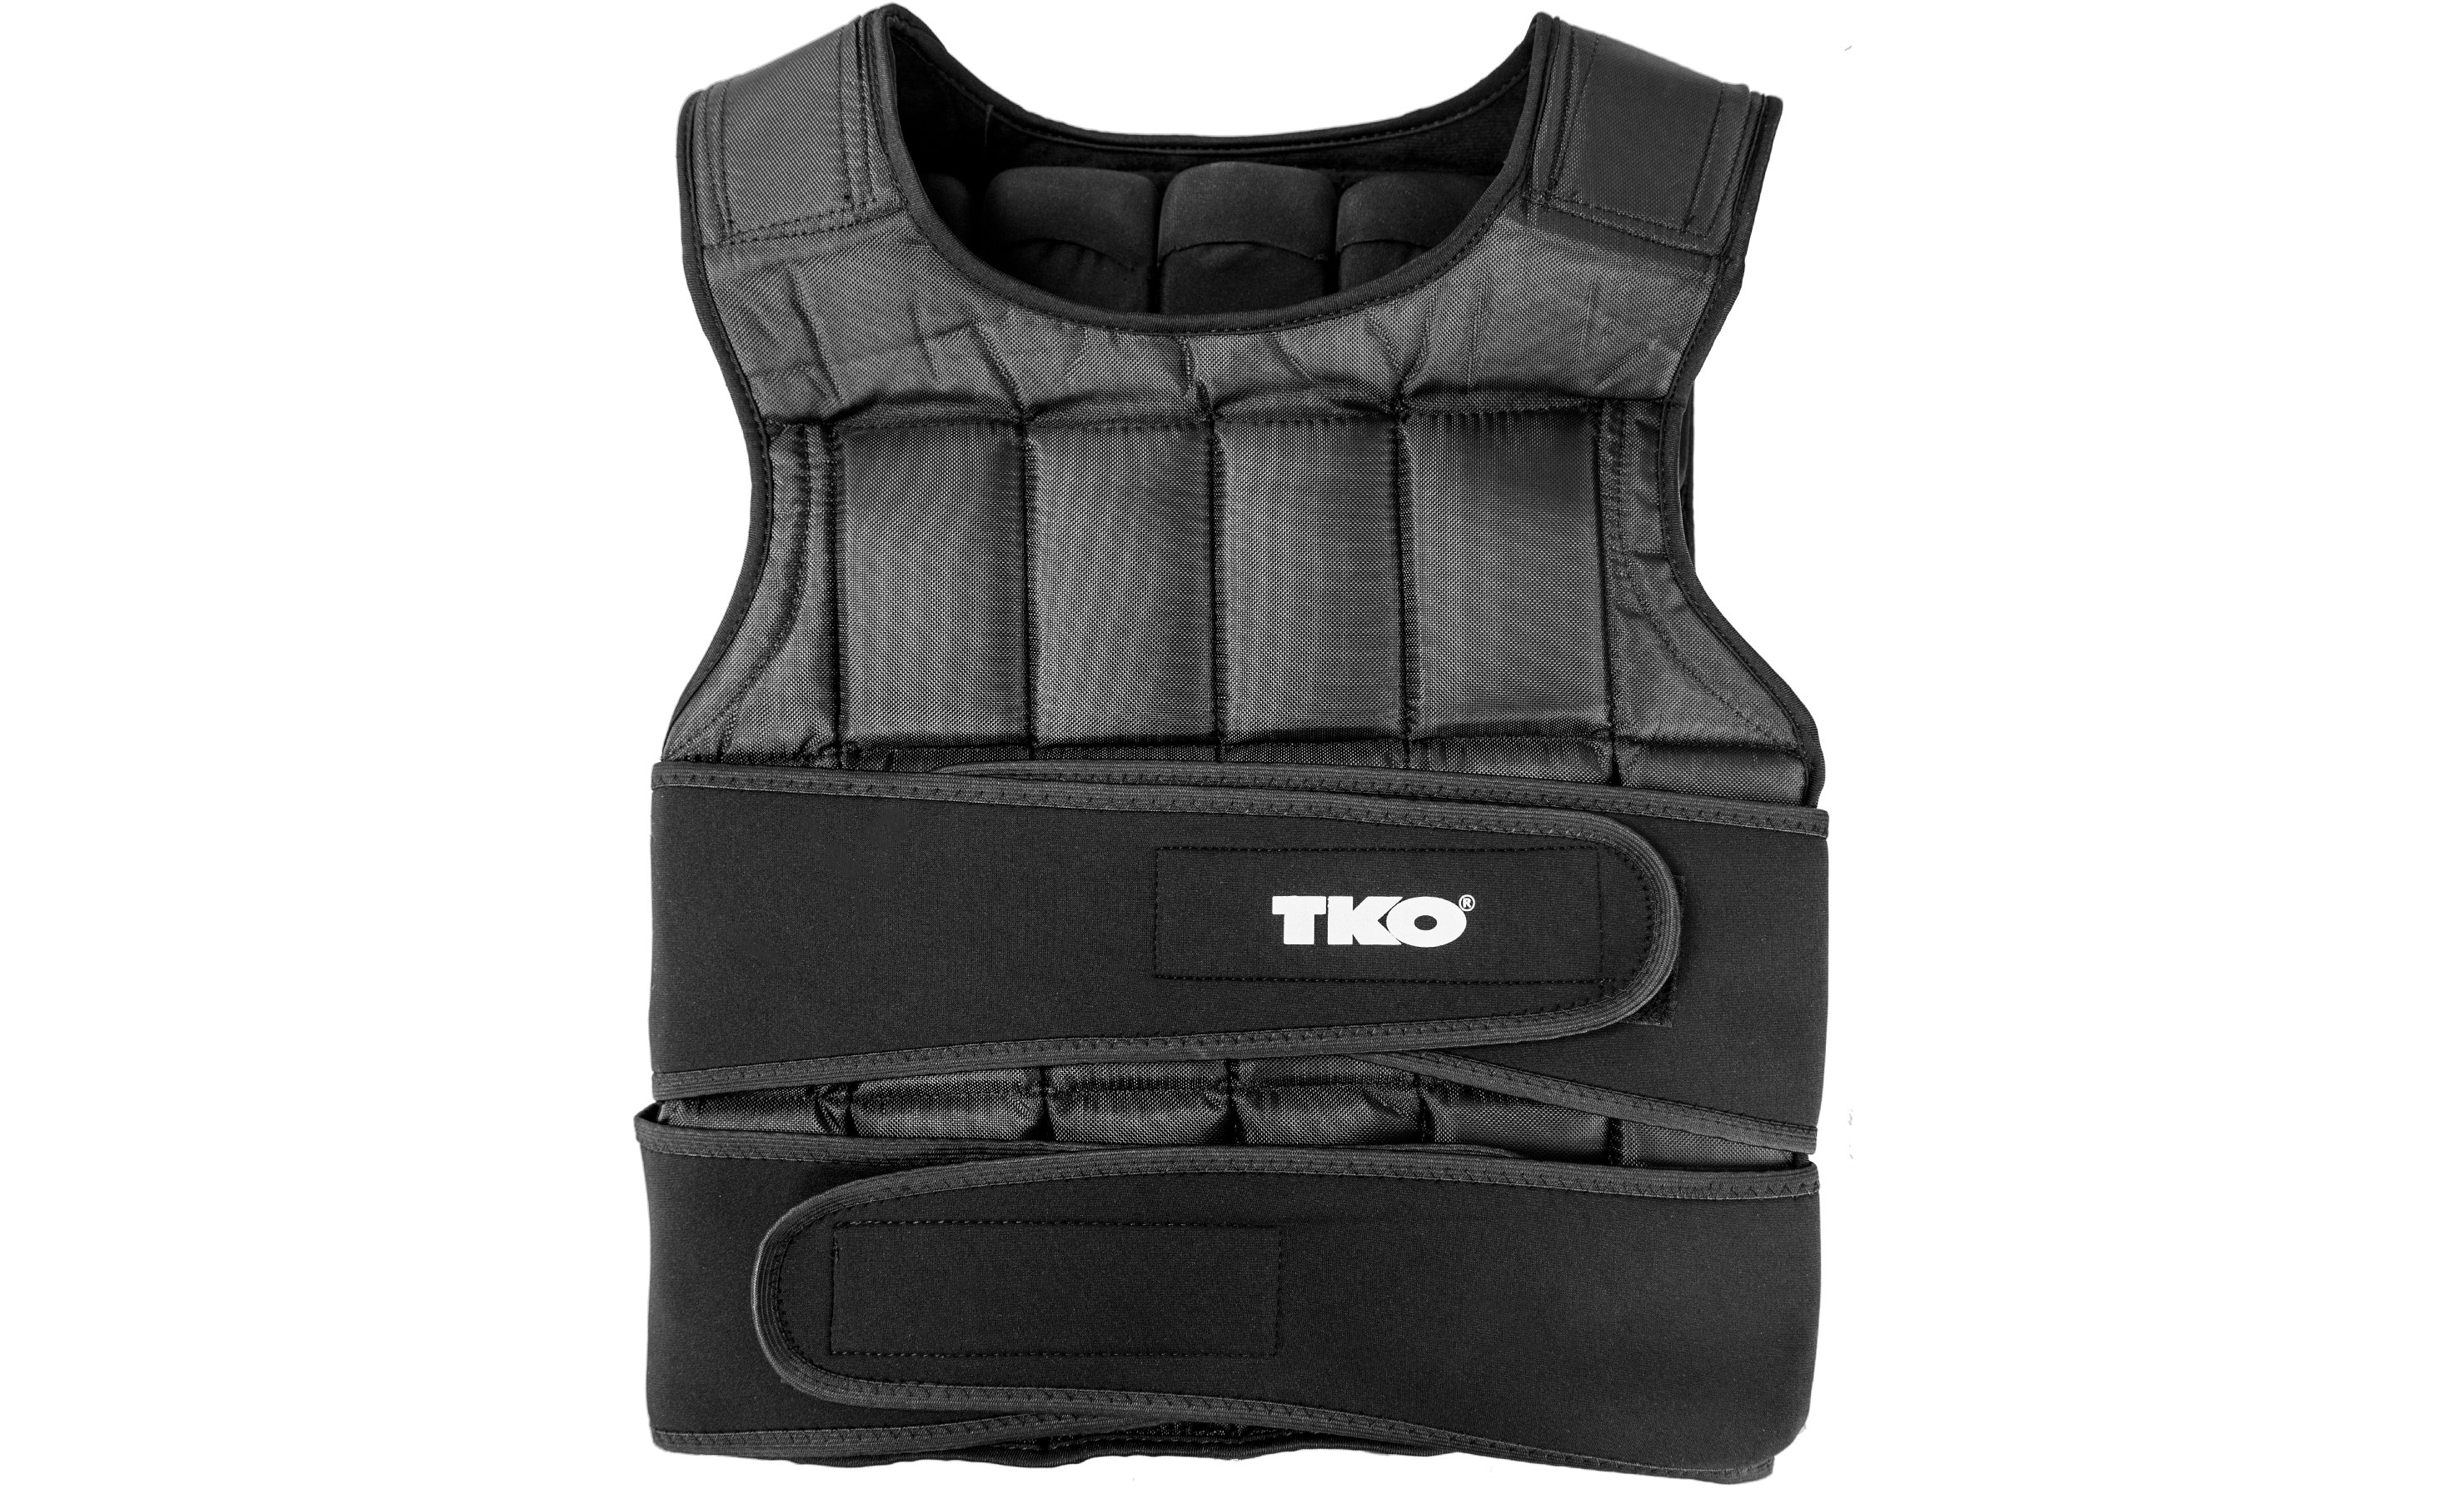 Weighted Vest-running Vest Thin Steel Stainless Adjustable Adjustable Vest Vest Leggings Hand Strapping Special Steel Plate For Weight-bearing Equipment For Training